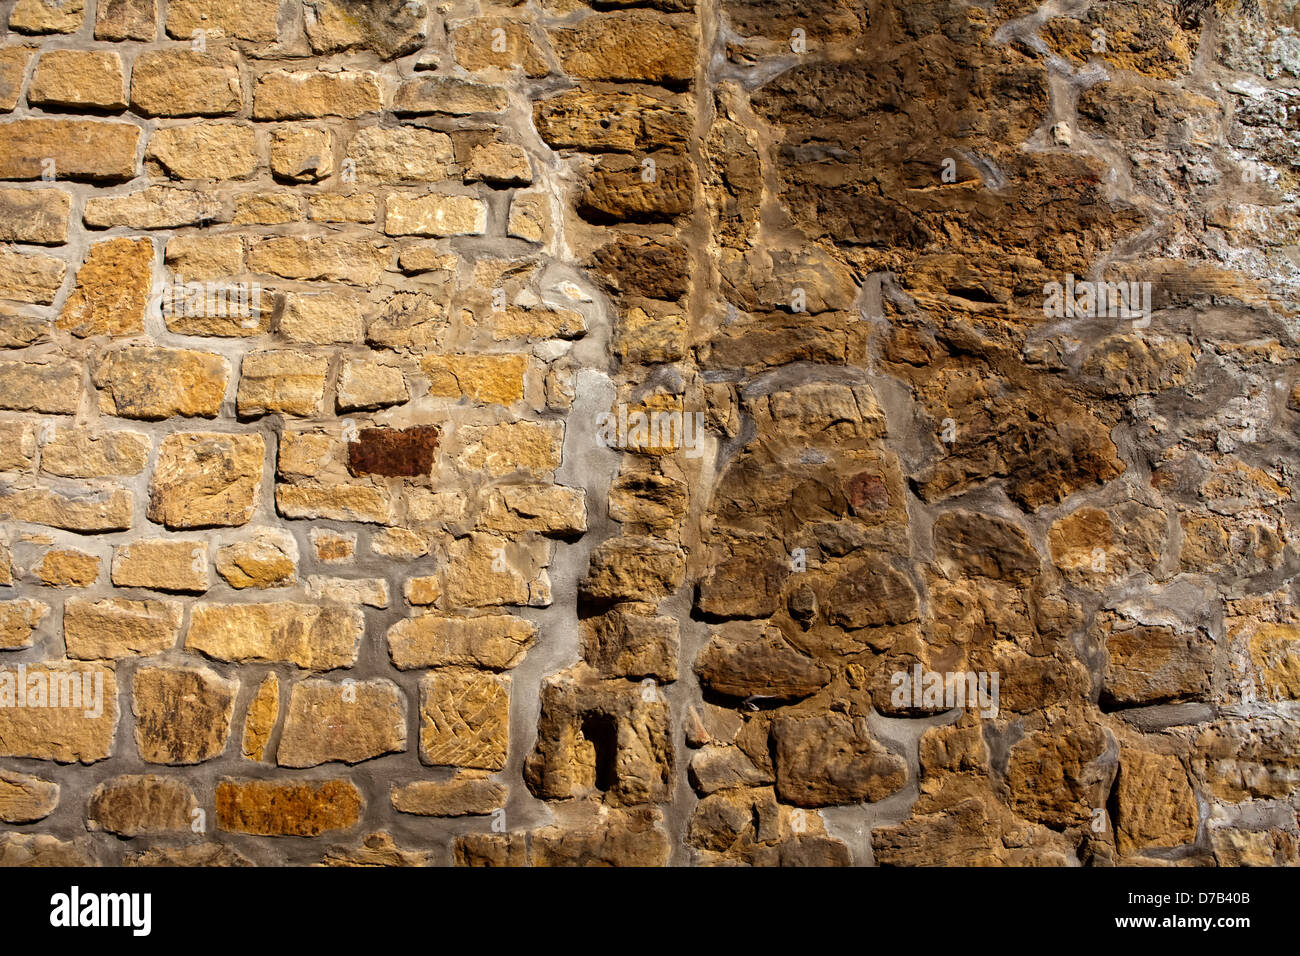 Stone wall,, Castle ruins of Beaufort or Belfort, Luxembourg, Europe, Die Burgruine Beaufort oder Belfort, Luxemburg, - Stock Image